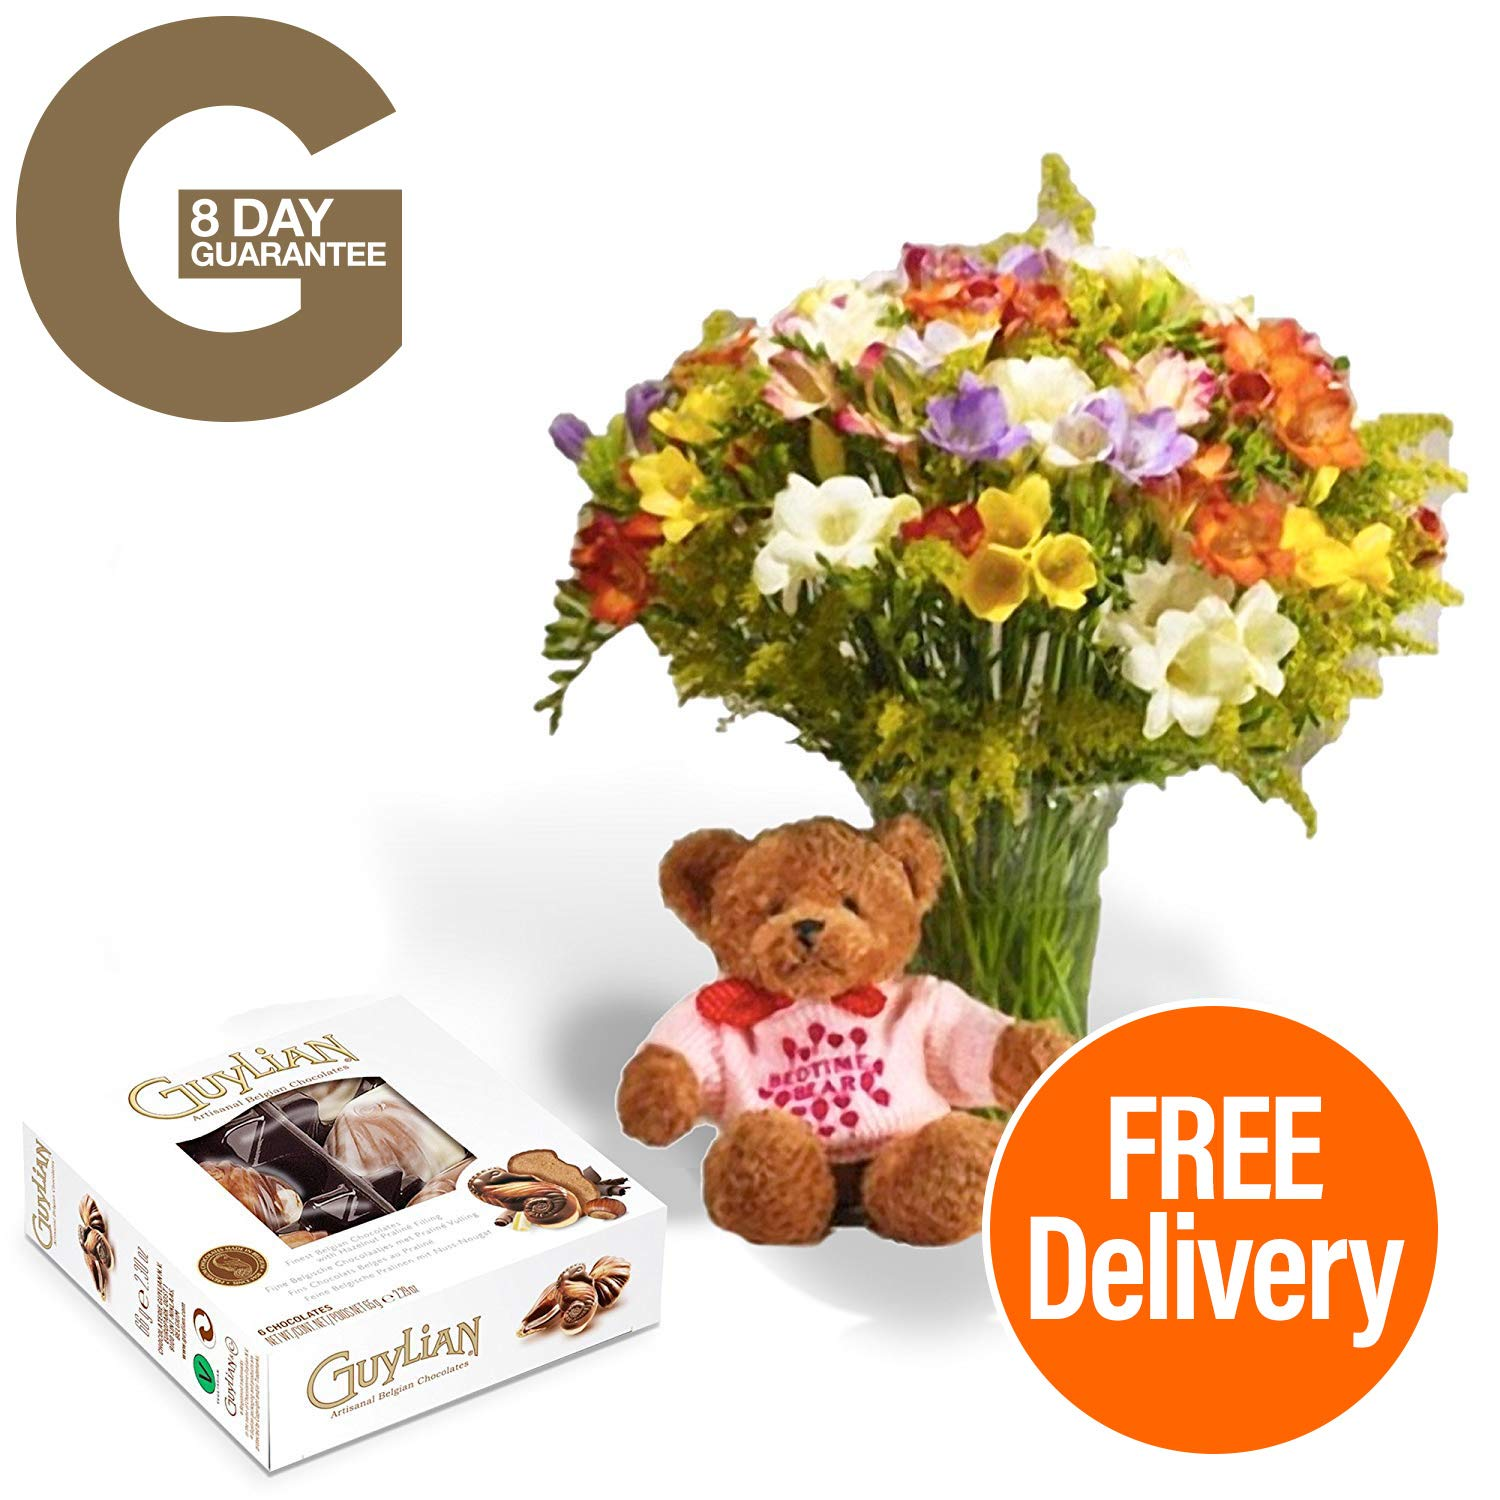 Fresh Flowers Delivered - Guernsey Freesia Bouquet with Baby Girl Bear, Chocolates, Flower Food and Bonus Ebook Guide - Perfect for birthdays, anniversaries and thank you gifts - 8 Day Guarantee Guernsey Flowers